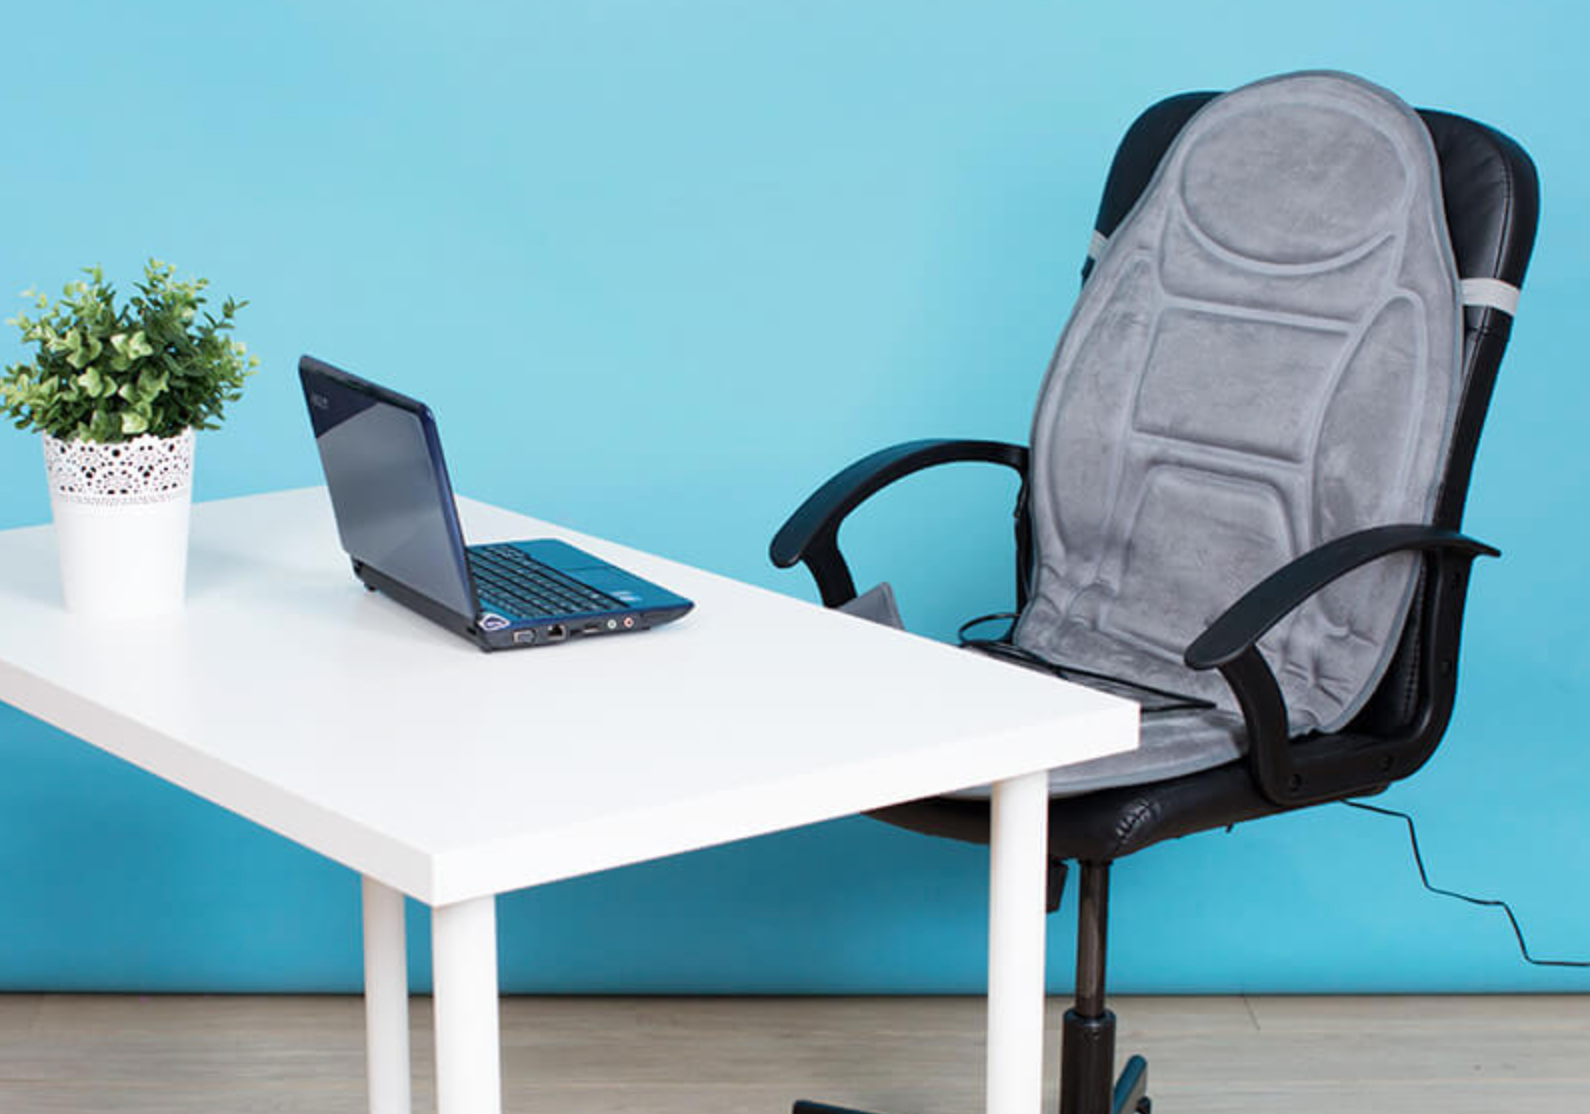 This heated seat massager will soothe away any work from home aches and pains, The Manc